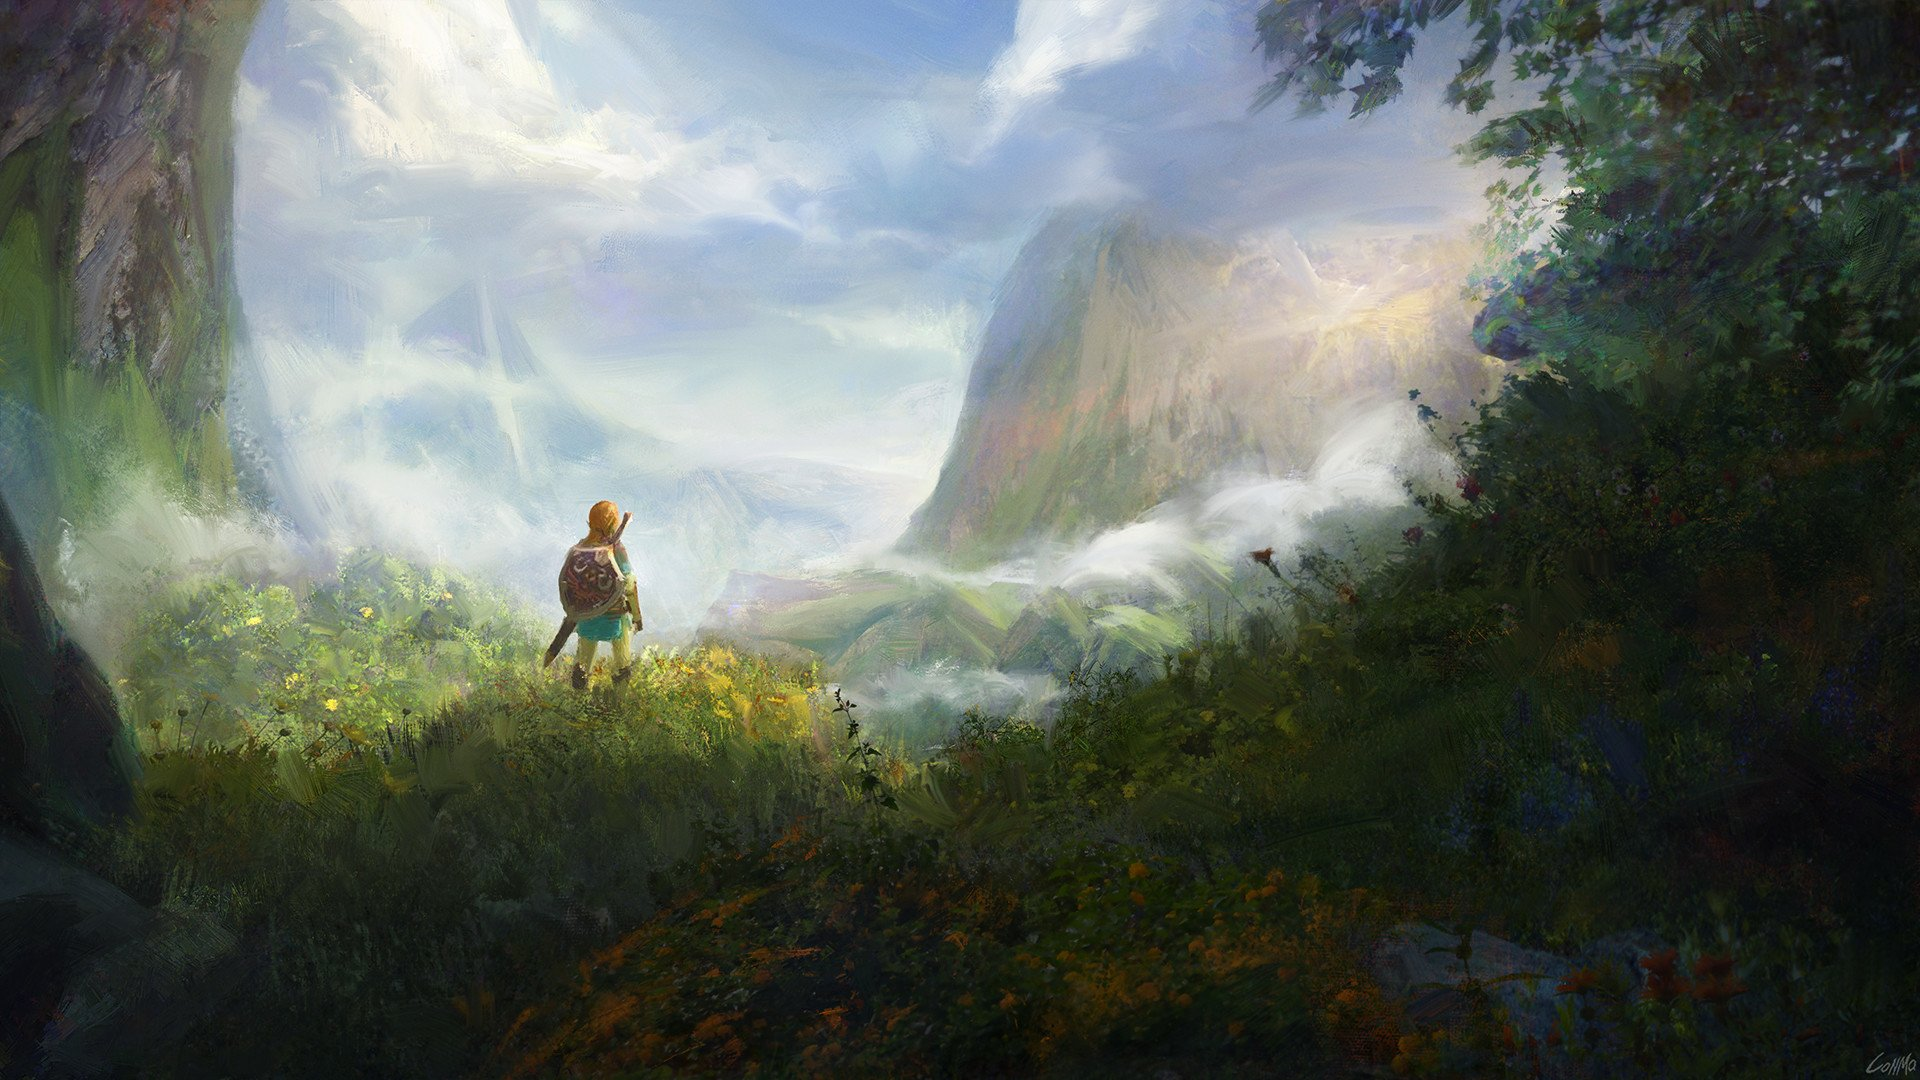 Breath Of The Wild Hd Wallpaper Background Image 1920x1080